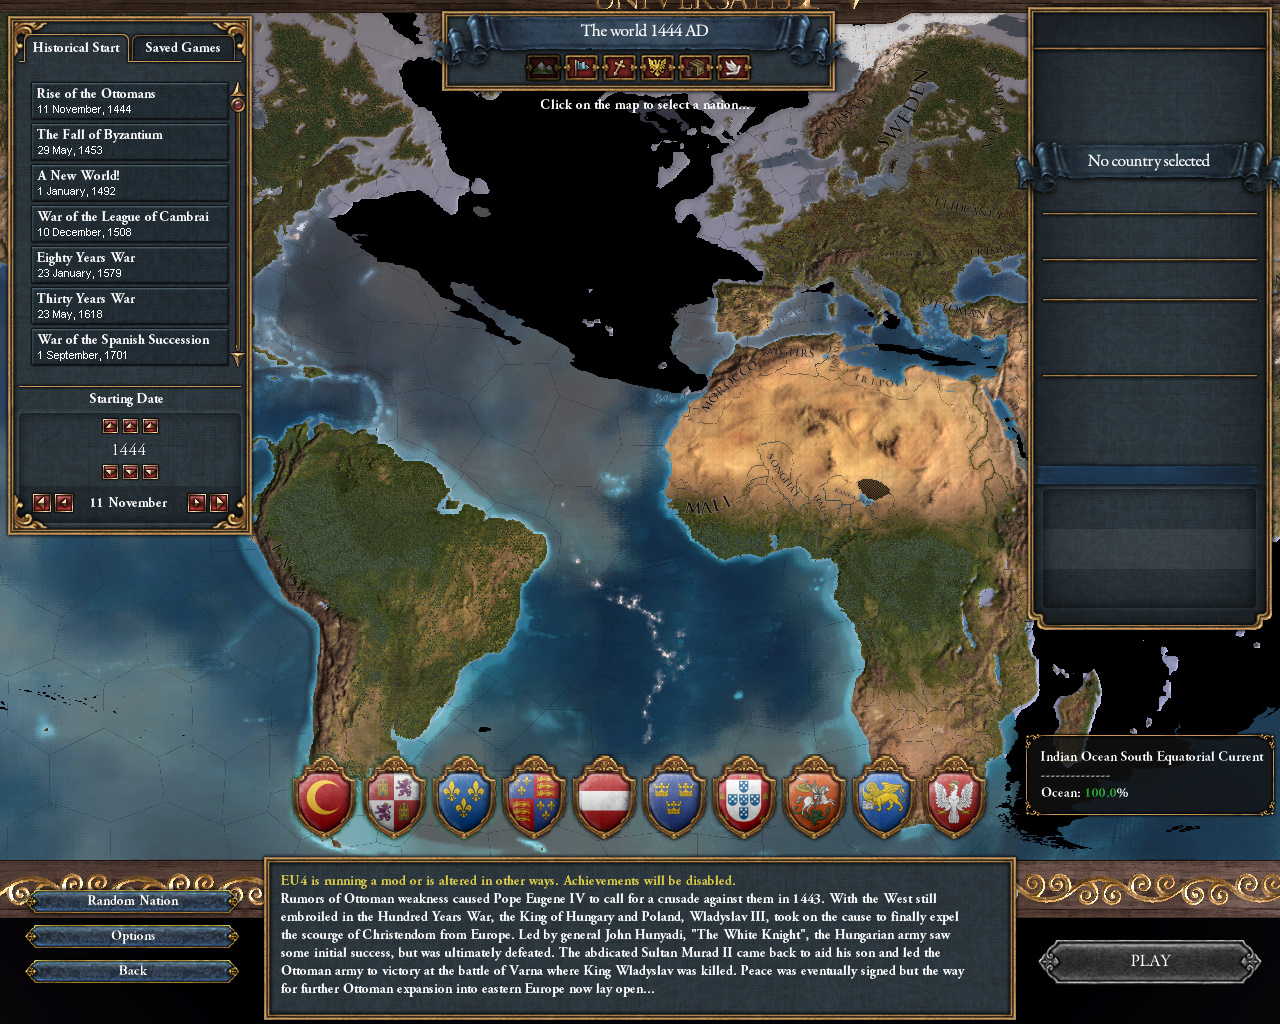 World map image 1860s 1890s mod for europa universalis iv mod db add media report rss world map view original gumiabroncs Image collections